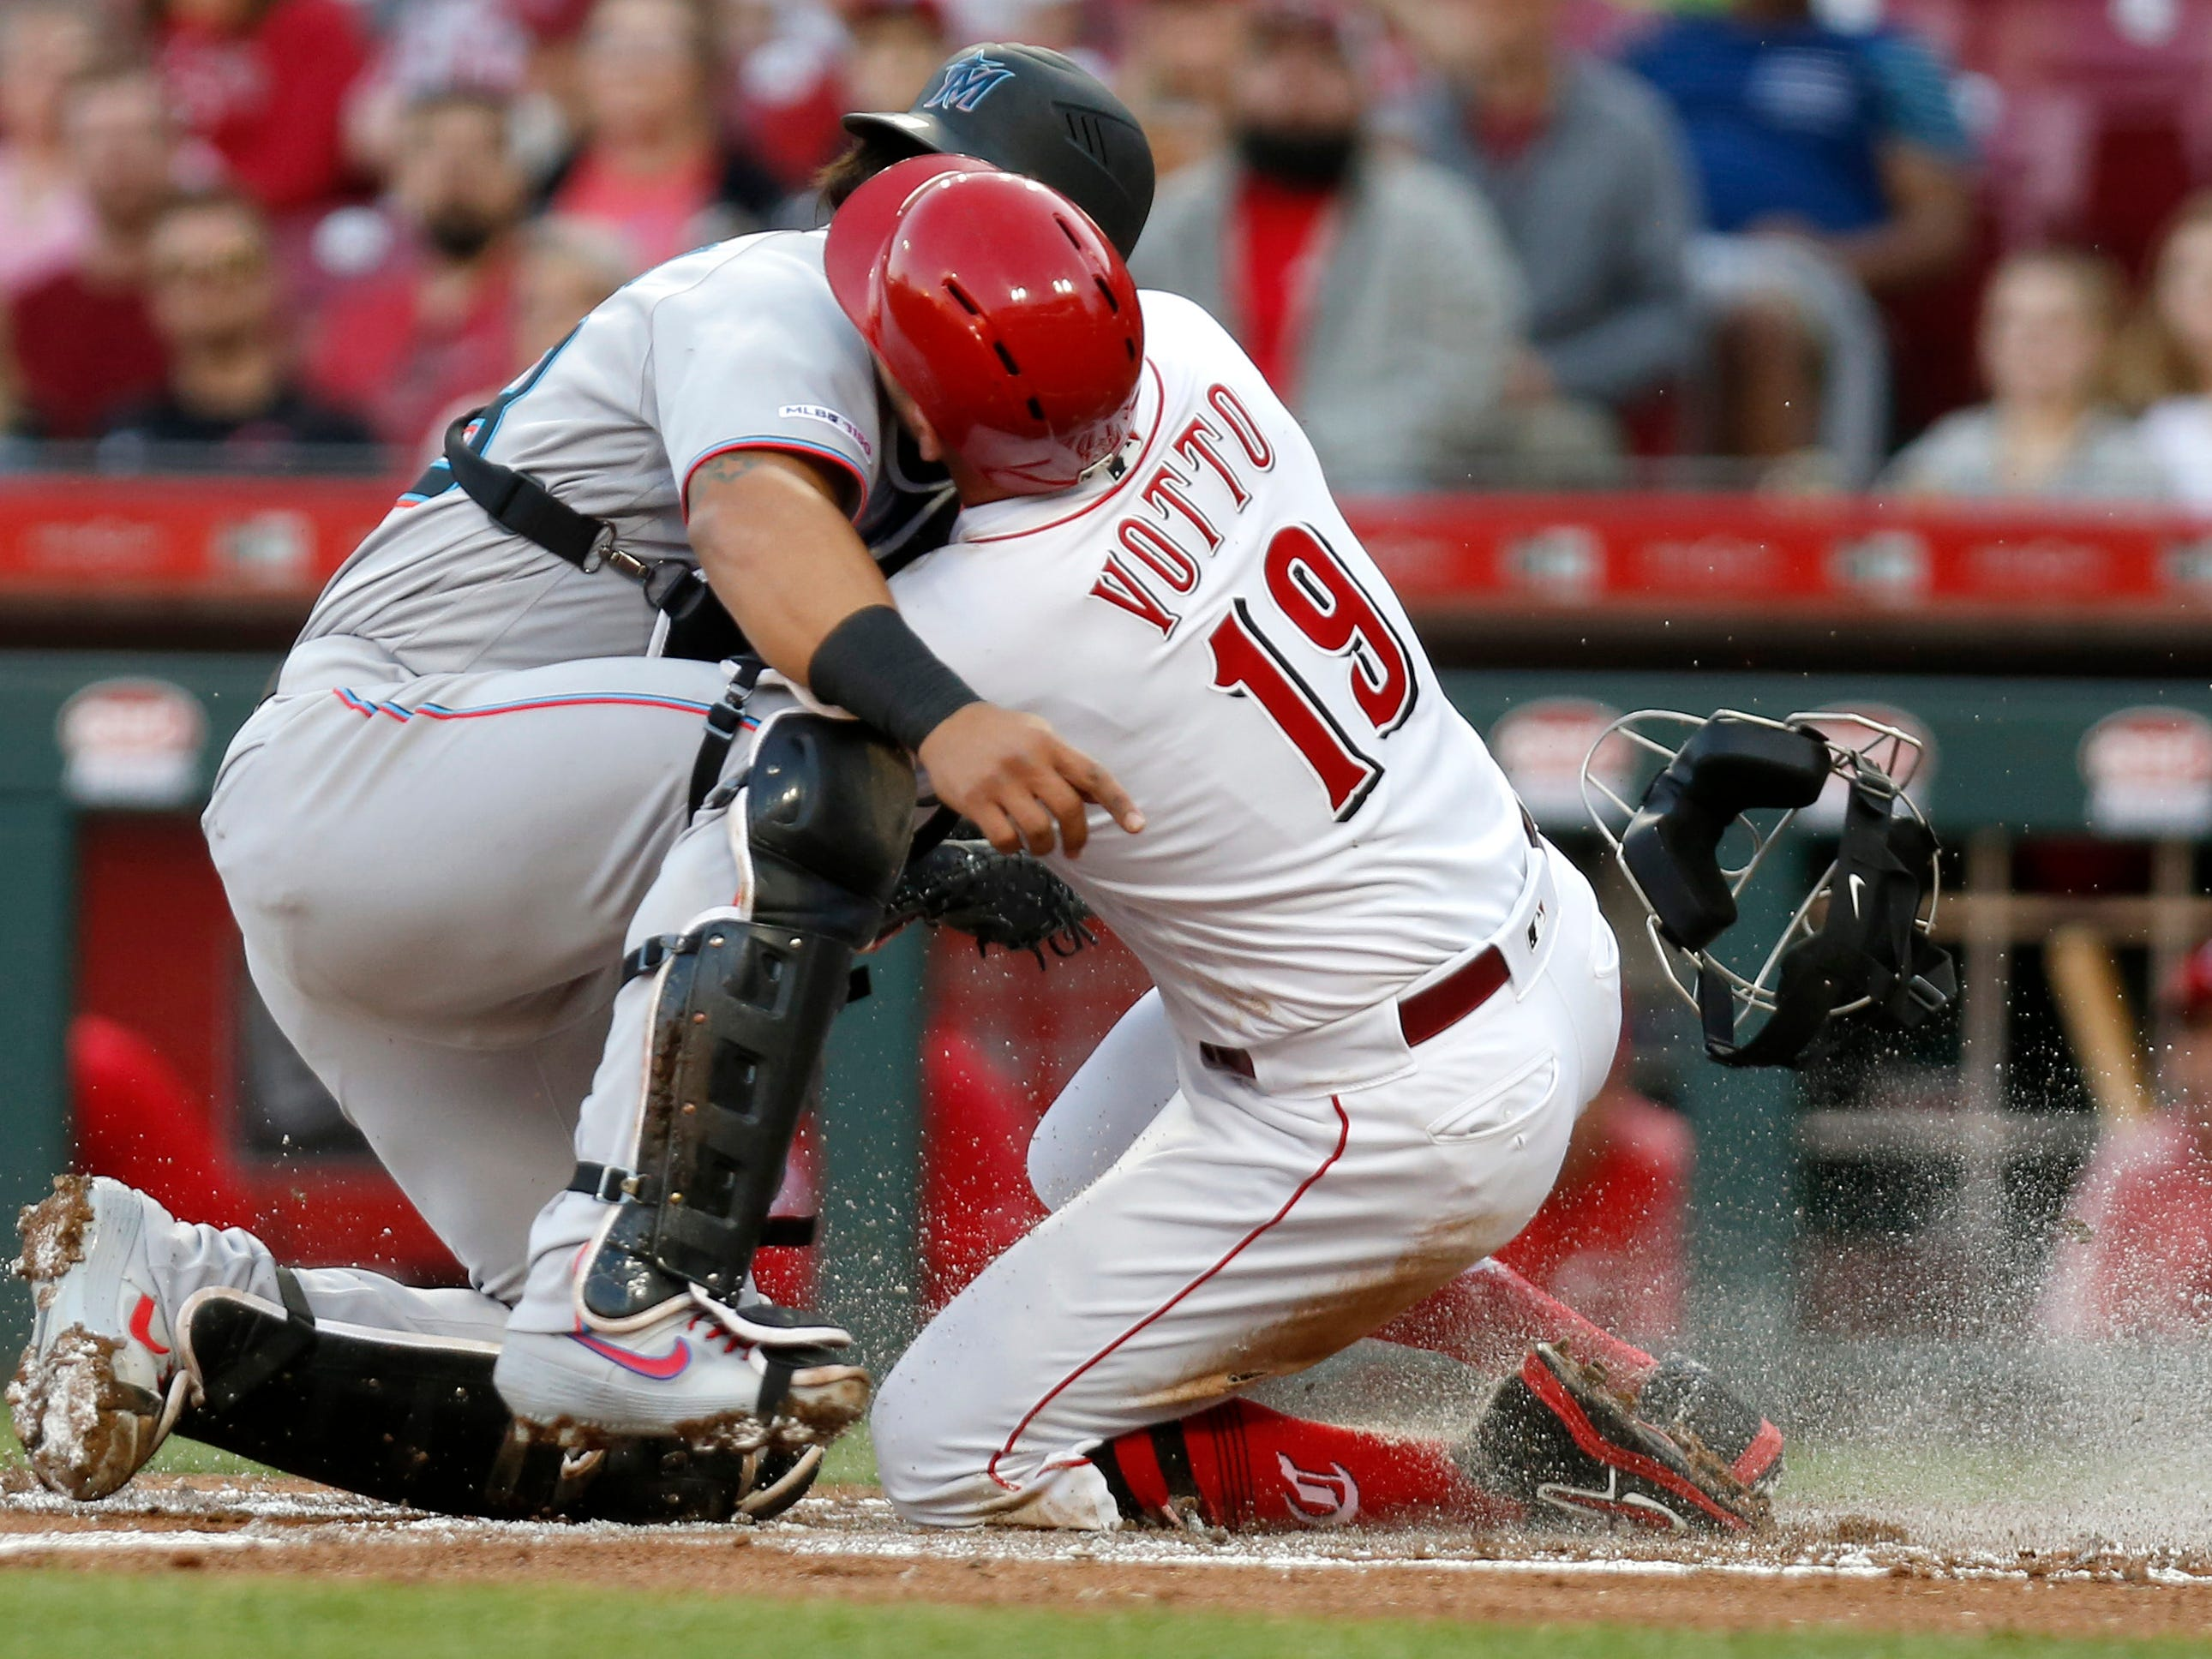 April 10: The Cincinnati Reds' Joey Votto (19) is tagged out at home plate by Miami Marlins catcher Jorge Alfaro during the first inning at Great American Ball Park. The Reds won the game, 2-1.